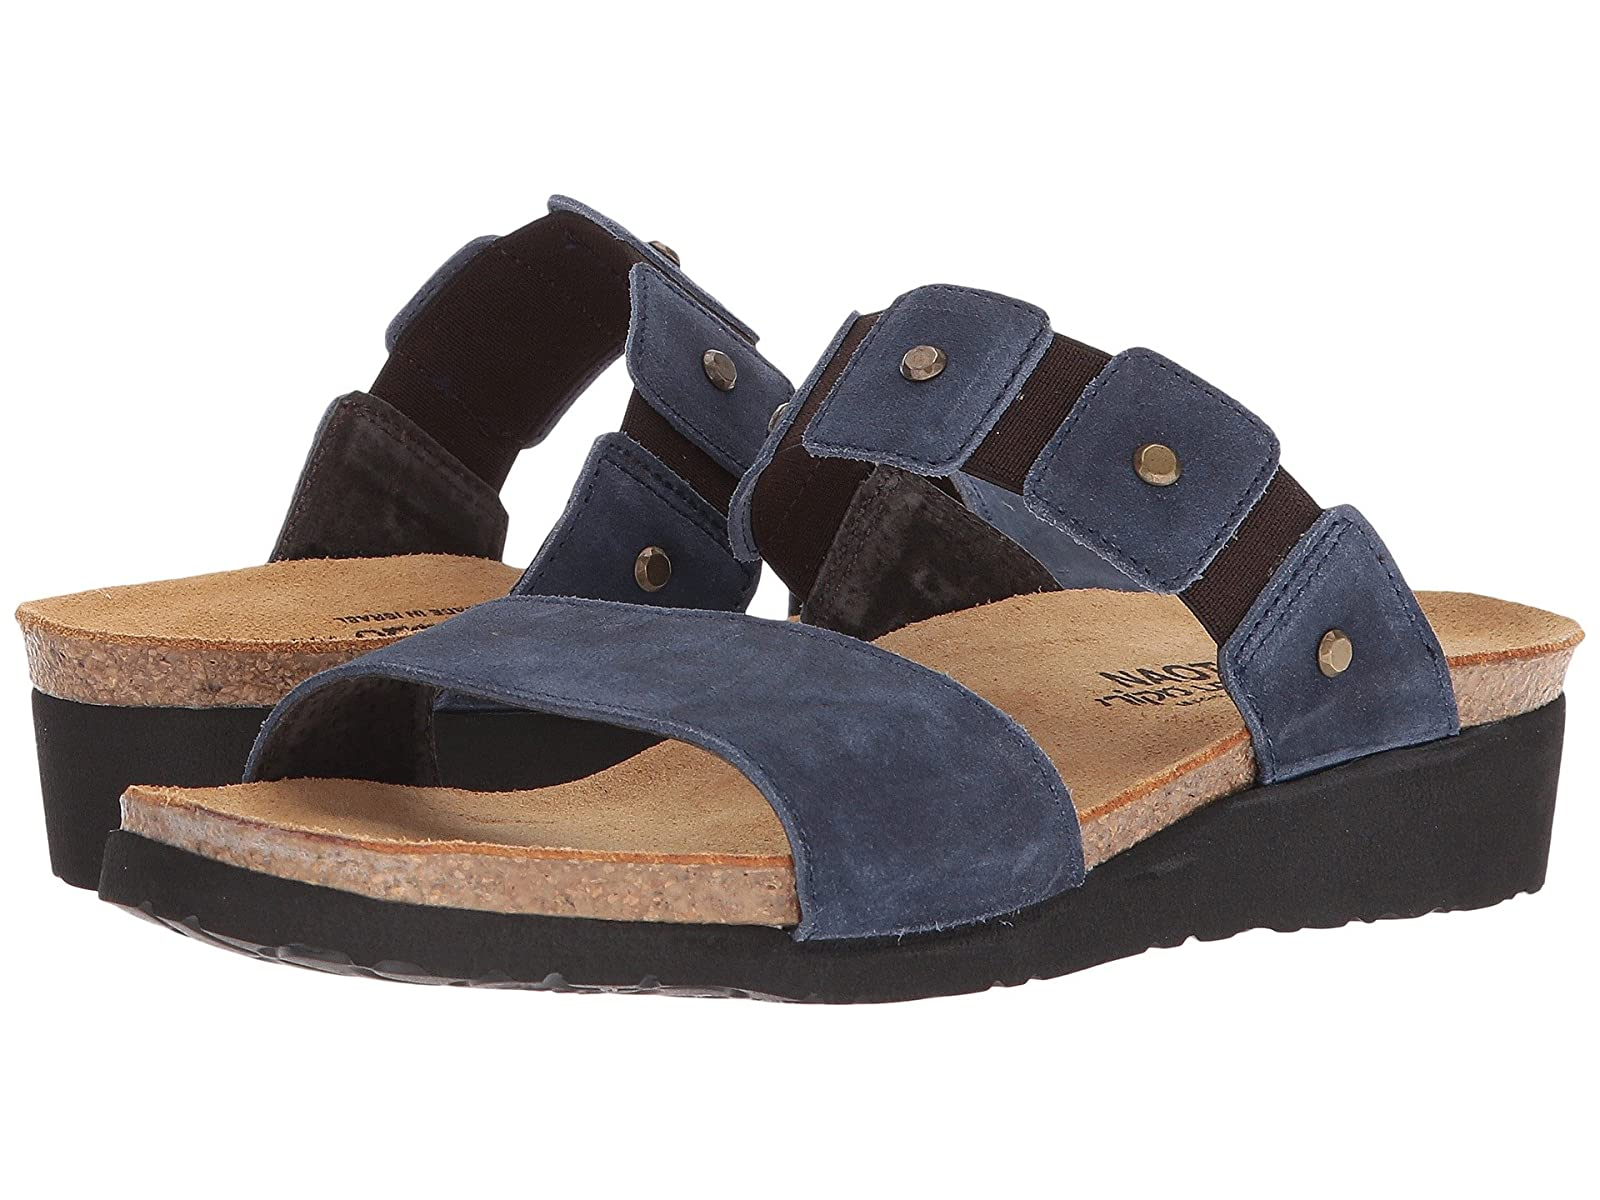 Naot ScarlettAtmospheric grades have affordable shoes